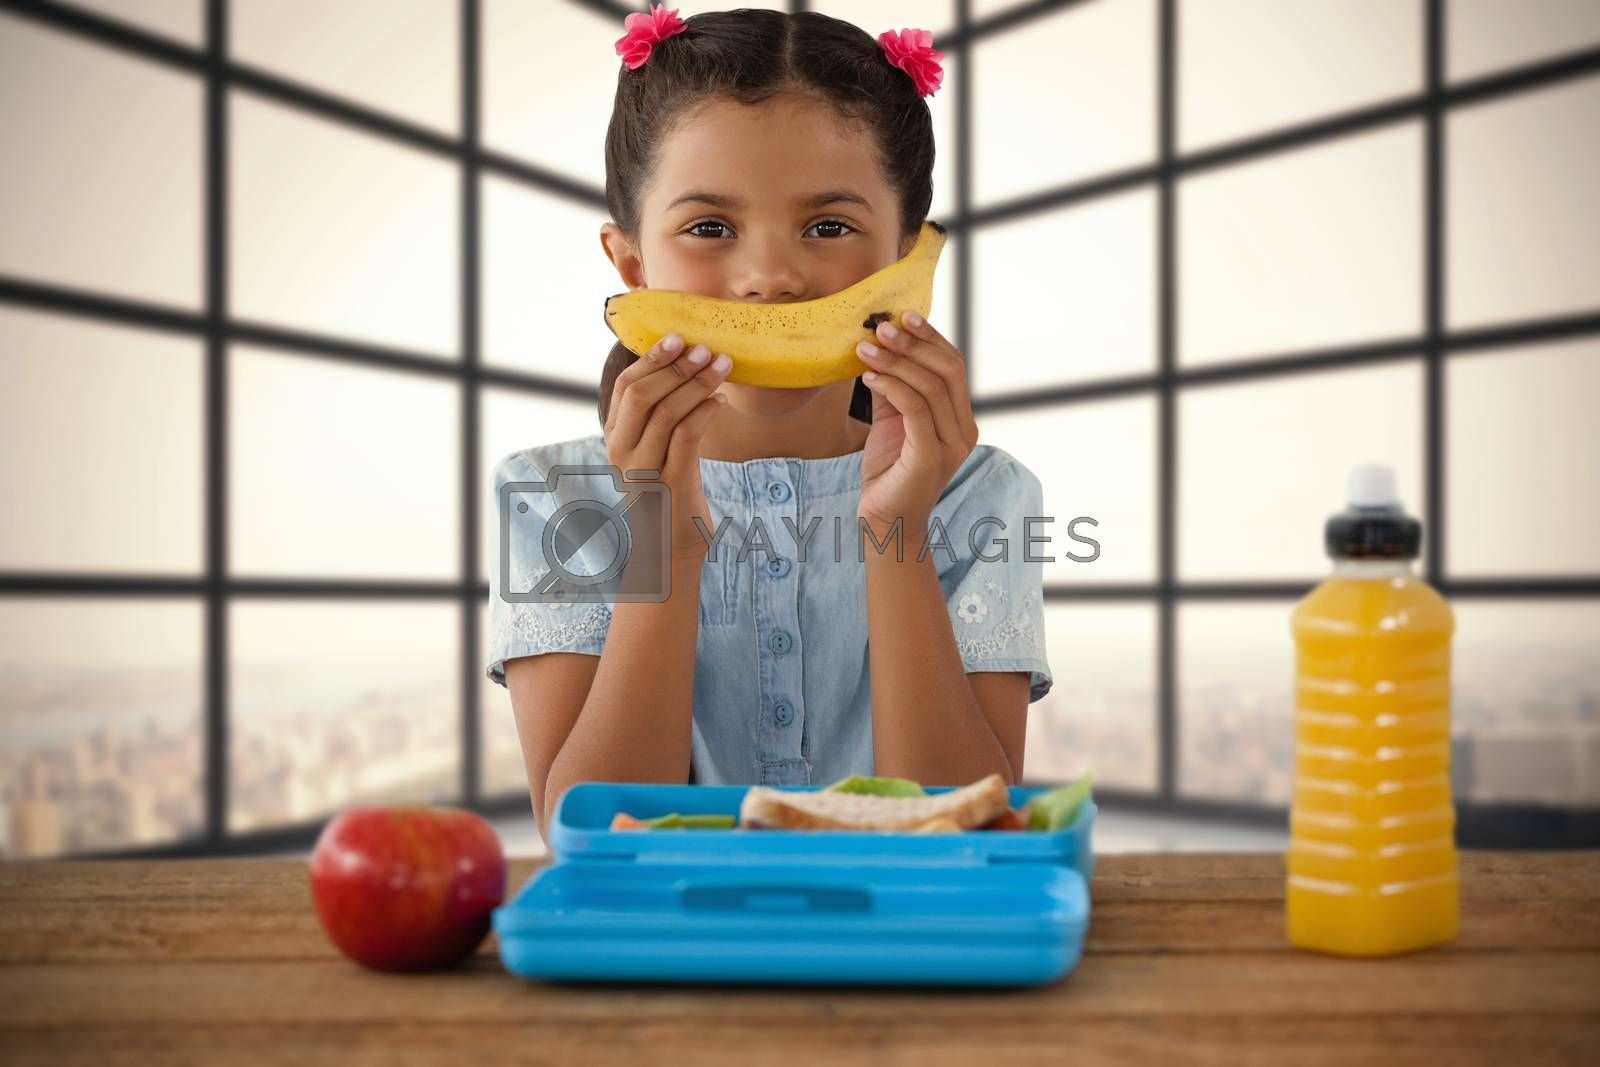 Composite image of girl holding banana at table by Wavebreakmedia